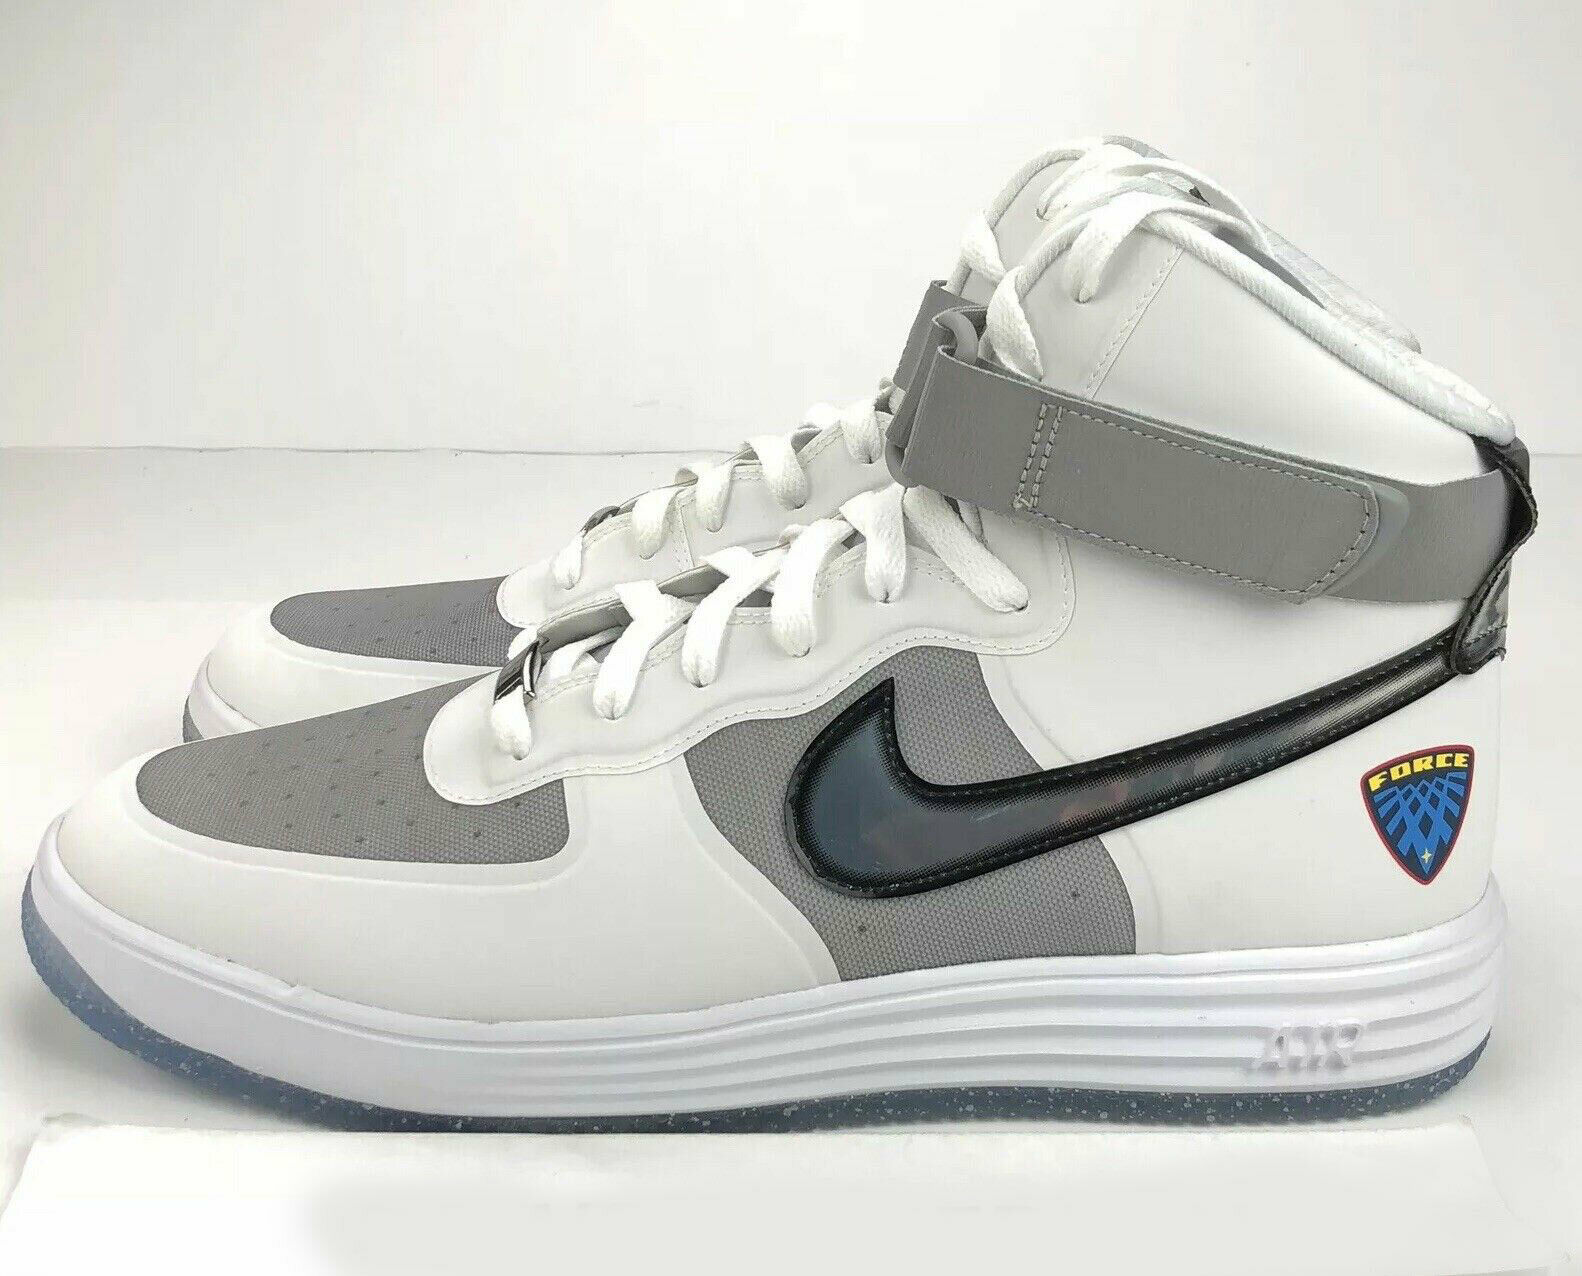 Nike Lunar Force 1 Hi WOW QS Nasa Men's 13 Flight White Silver 3M 632359 100